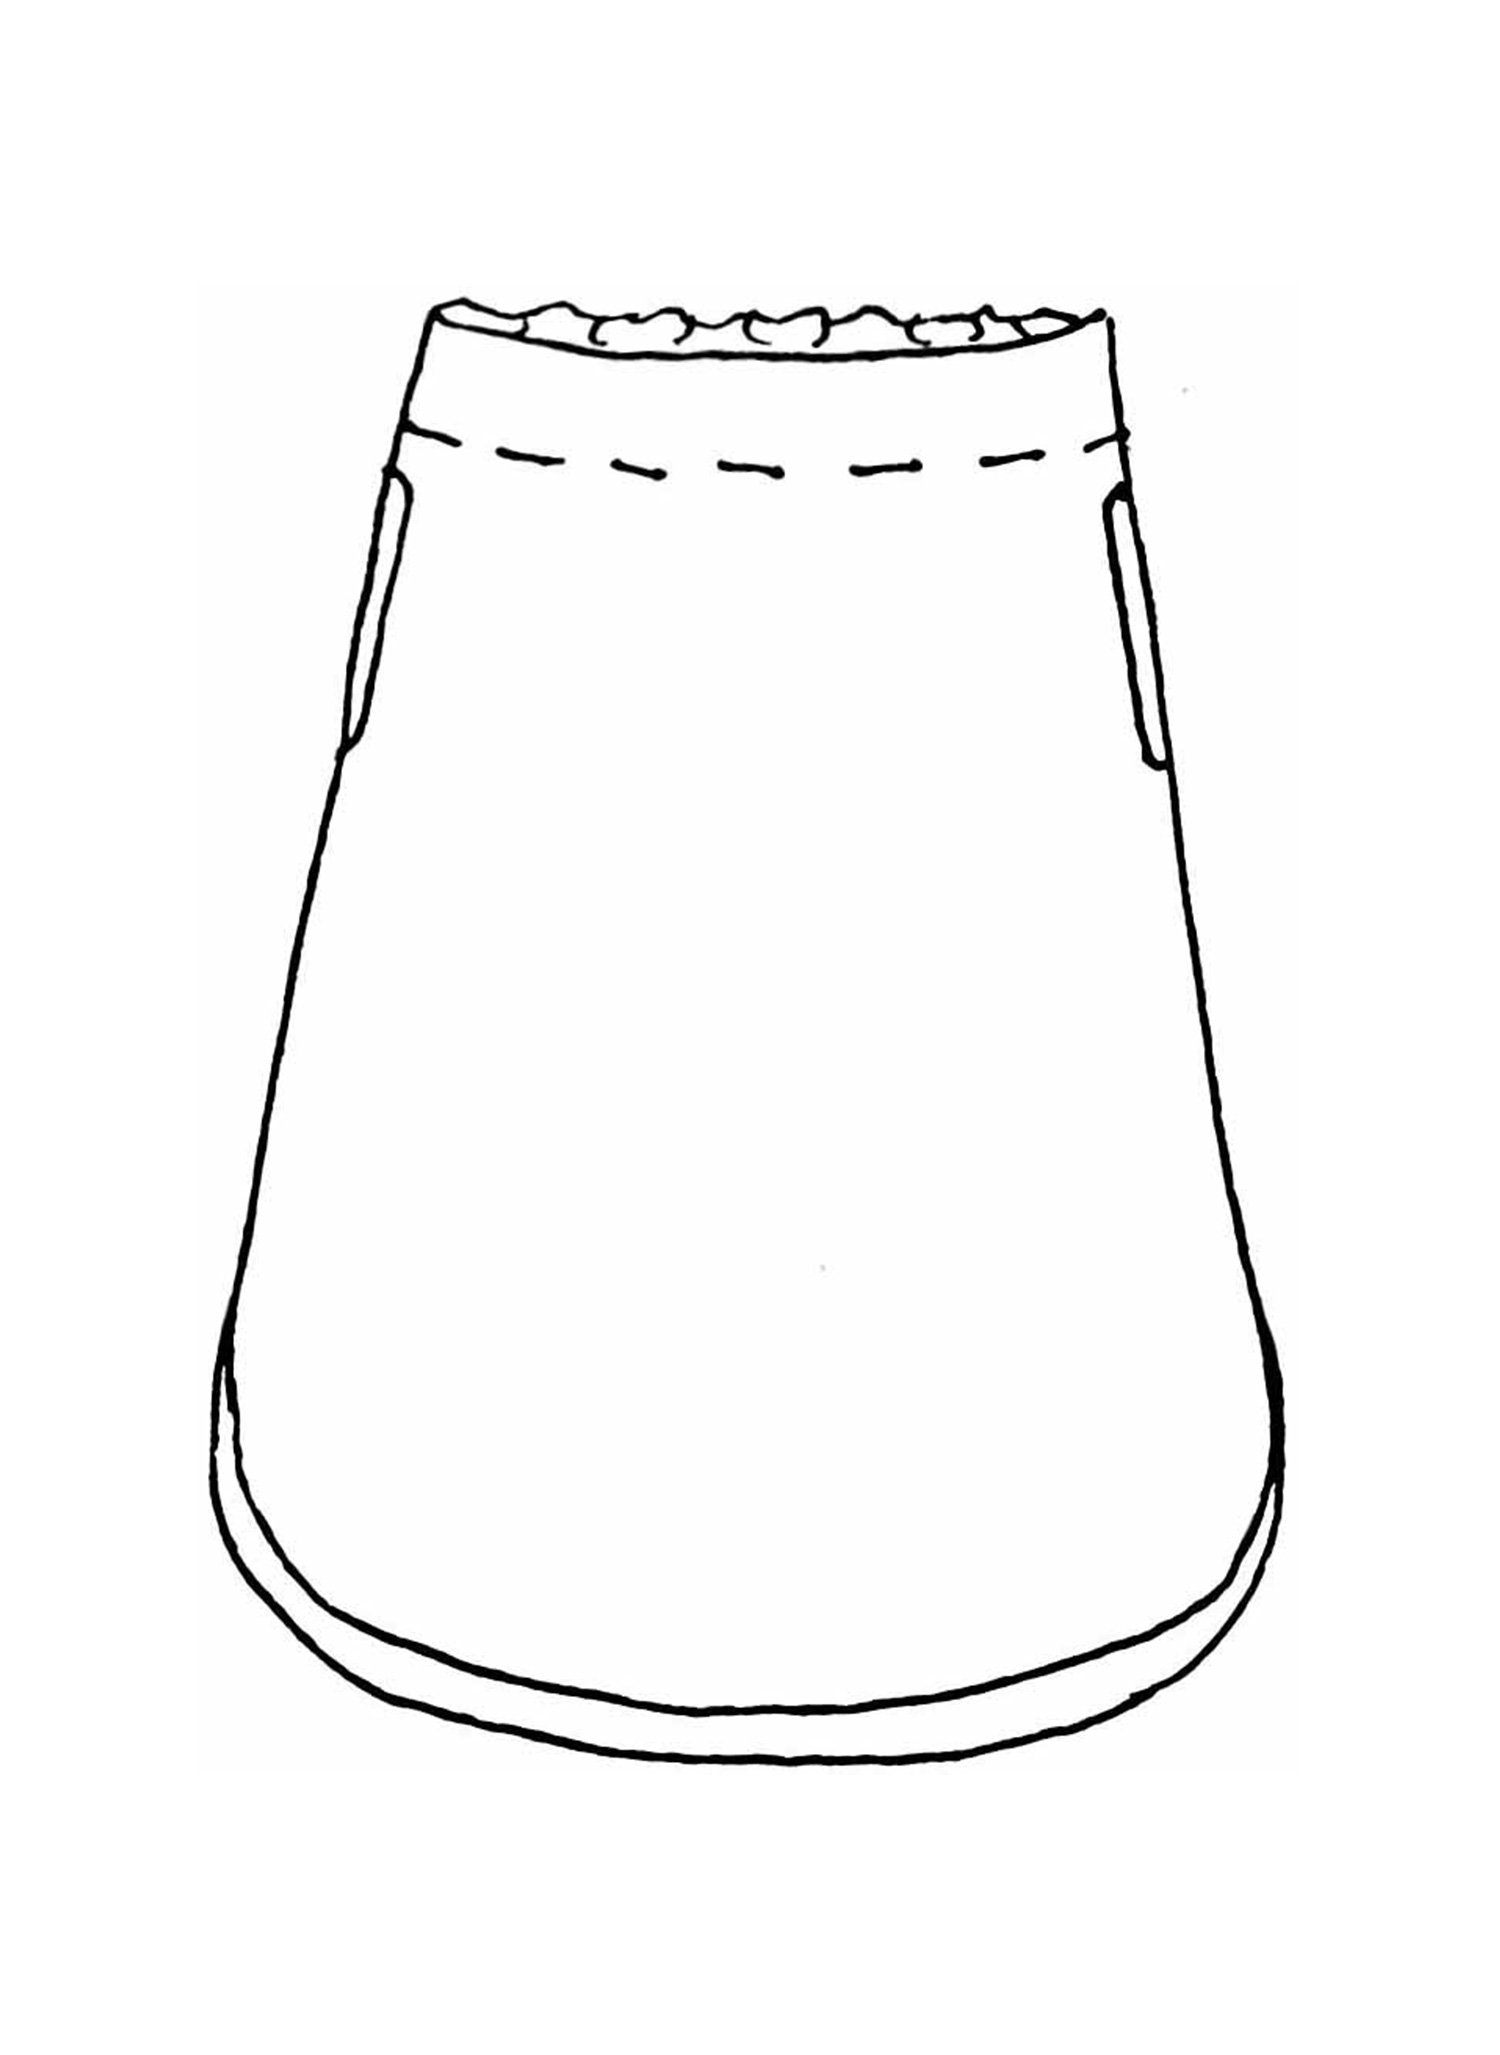 Radiant Skirt sketch image